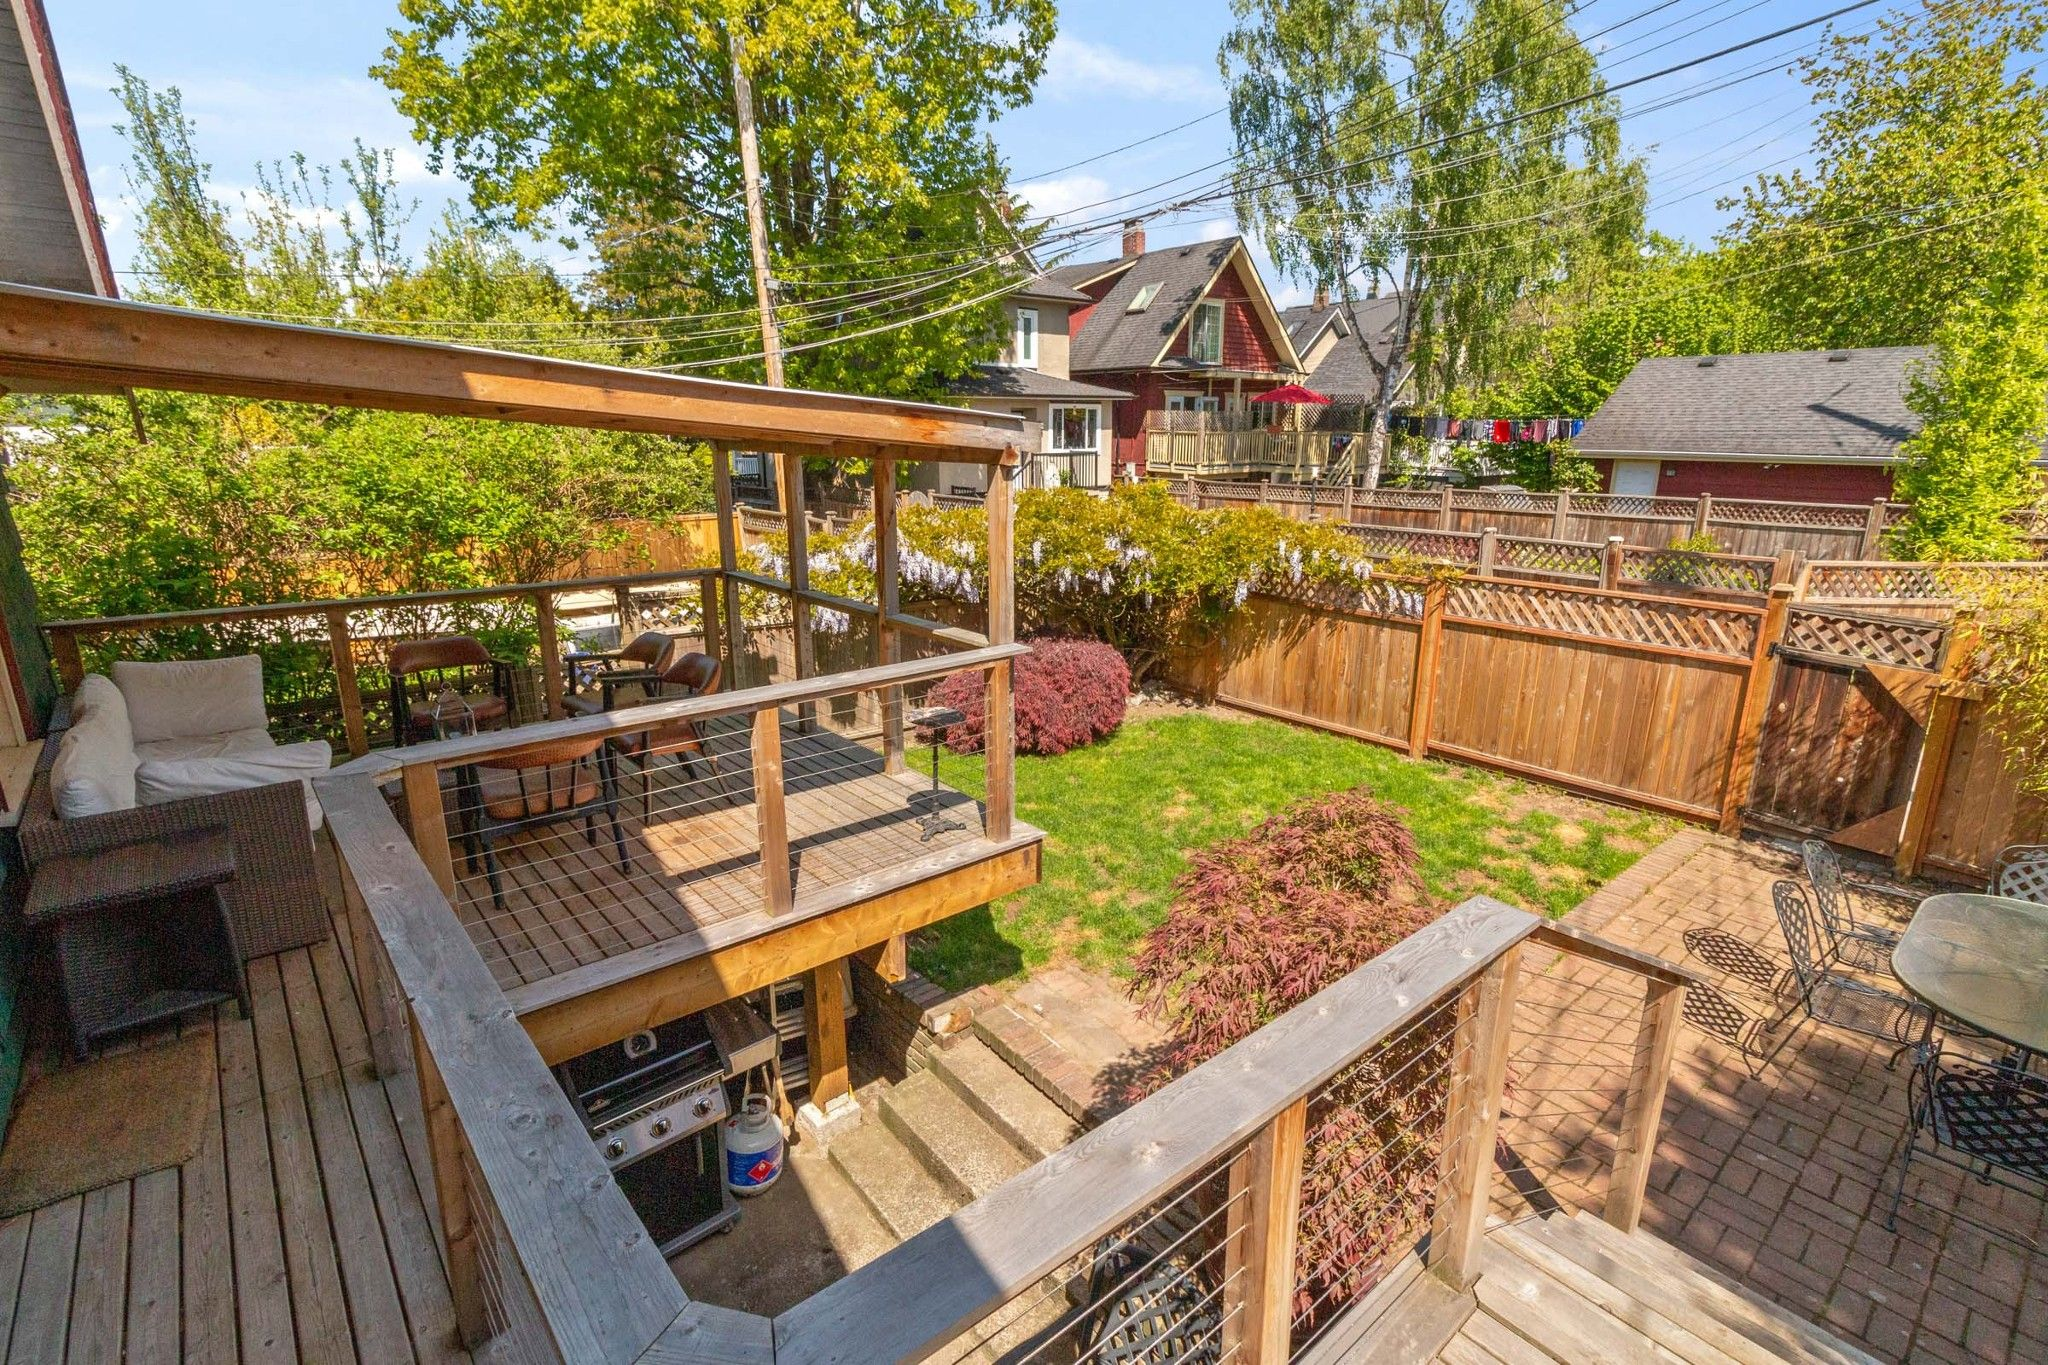 Photo 20: Photos: 3742 ONTARIO Street in Vancouver: Main House for sale (Vancouver East)  : MLS®# R2580004